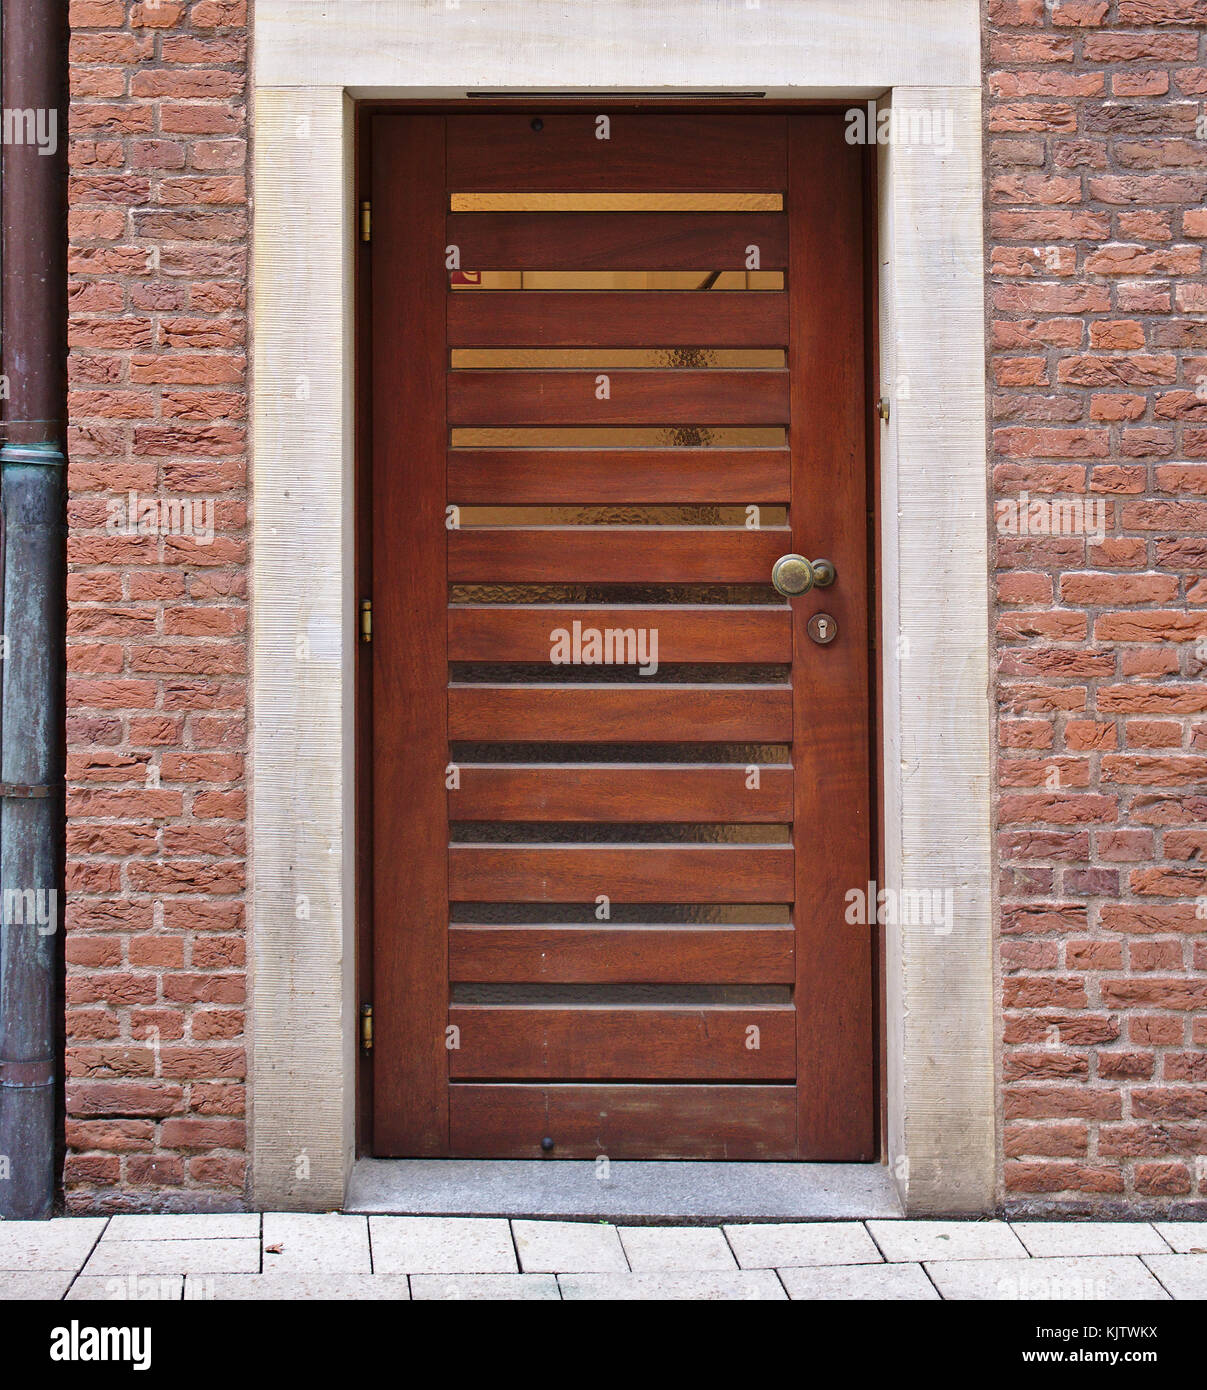 Modern Wooden Door In Red Brick Wall With Narrow Horizontal Window Panes  And Downspout